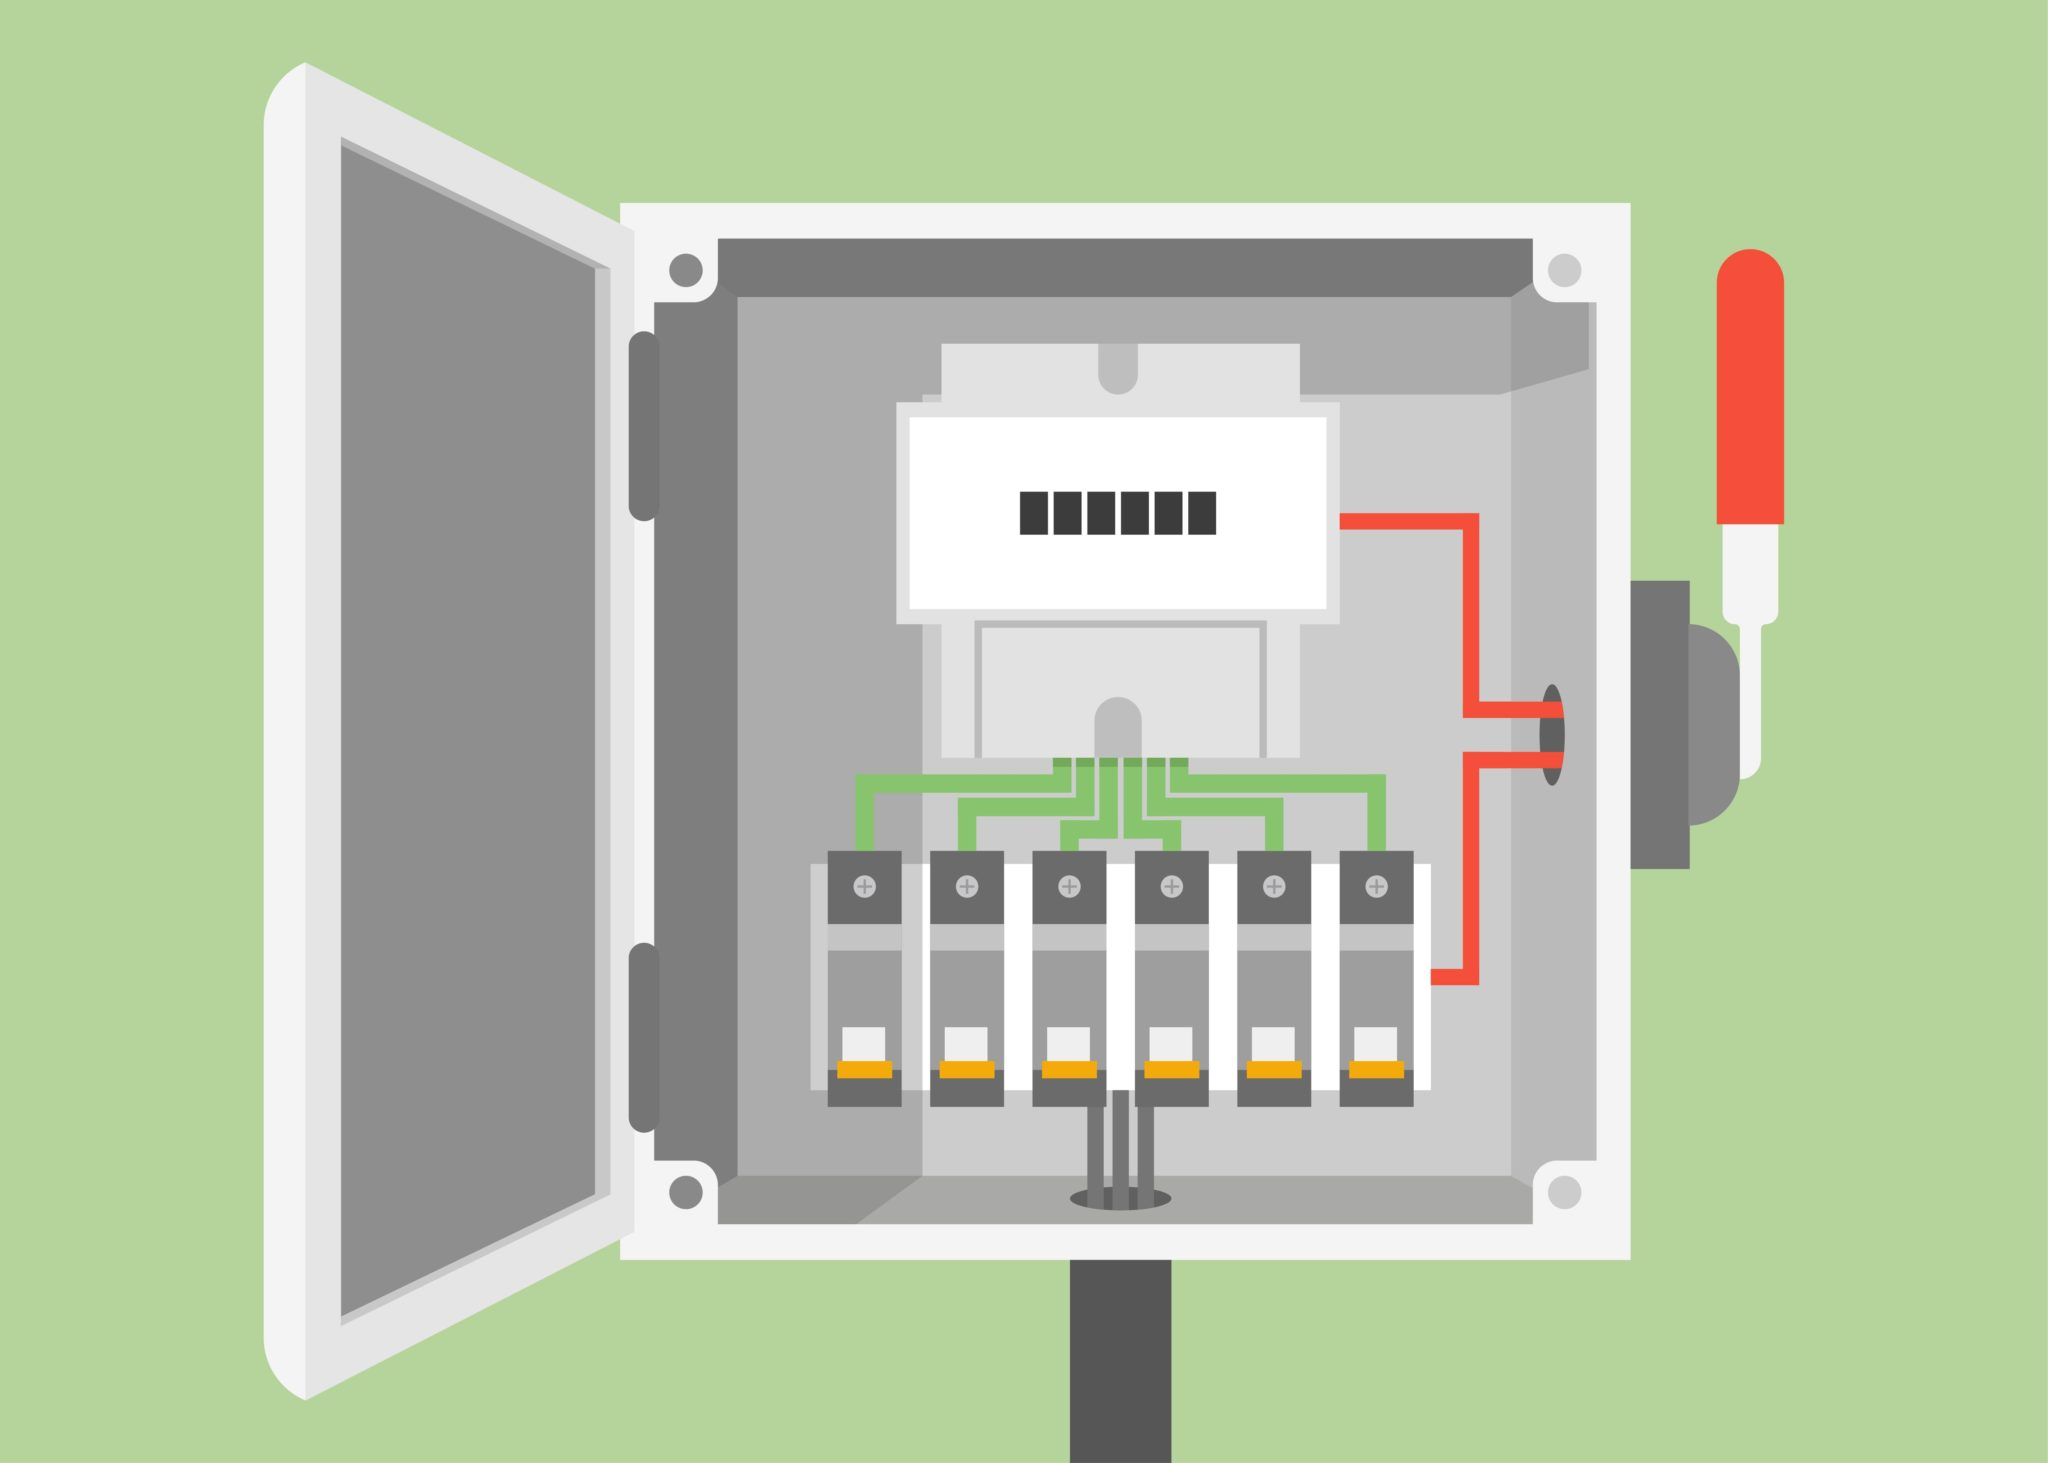 electrical panel inspection safety tips for every electrician  supply chain solutions